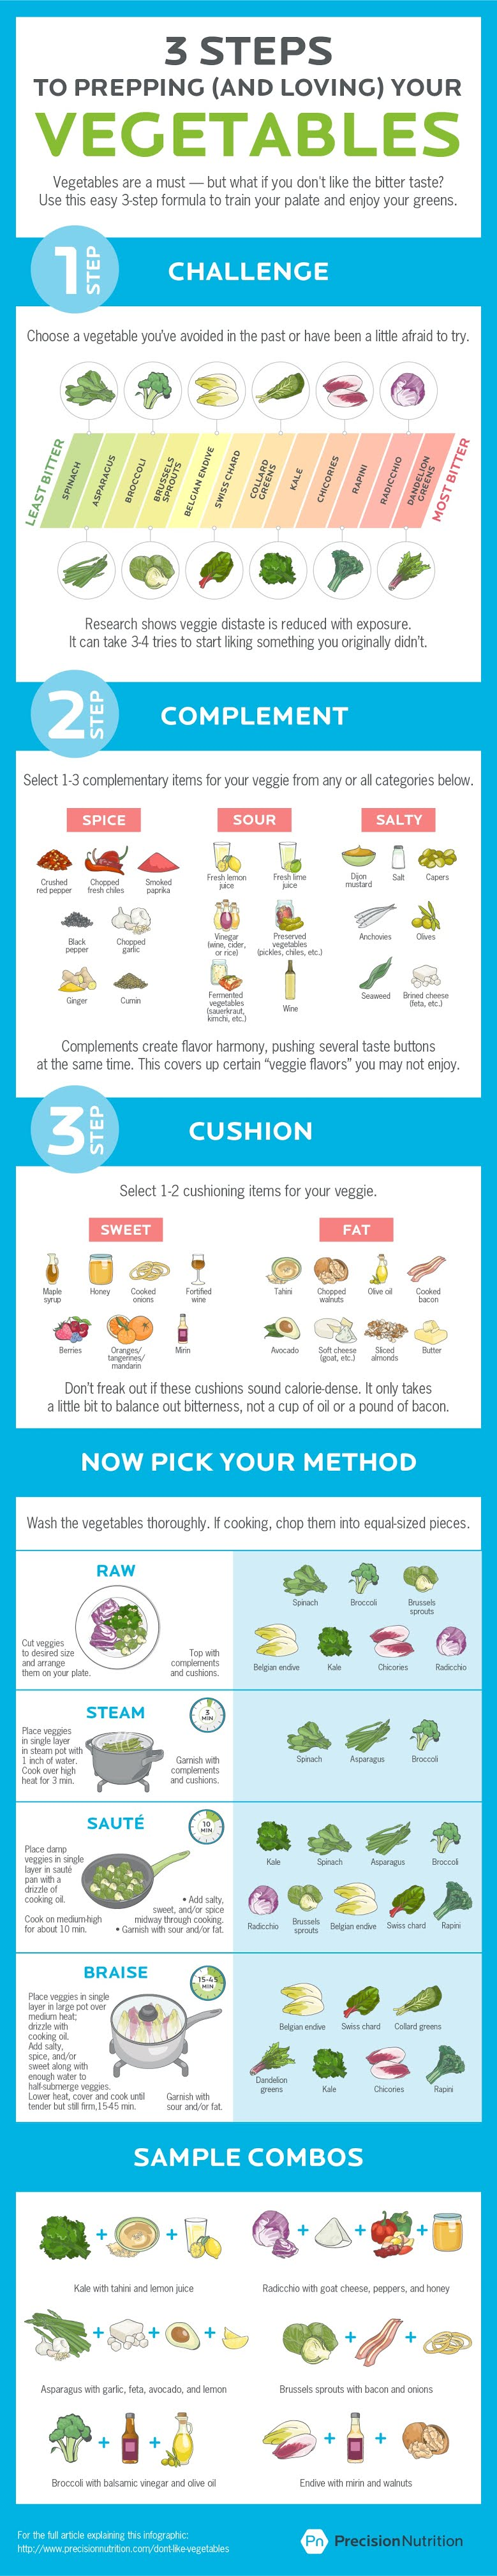 3 steps for prepping (and loving) your Vegetables #infographic  #Food #Vegetables #infographics